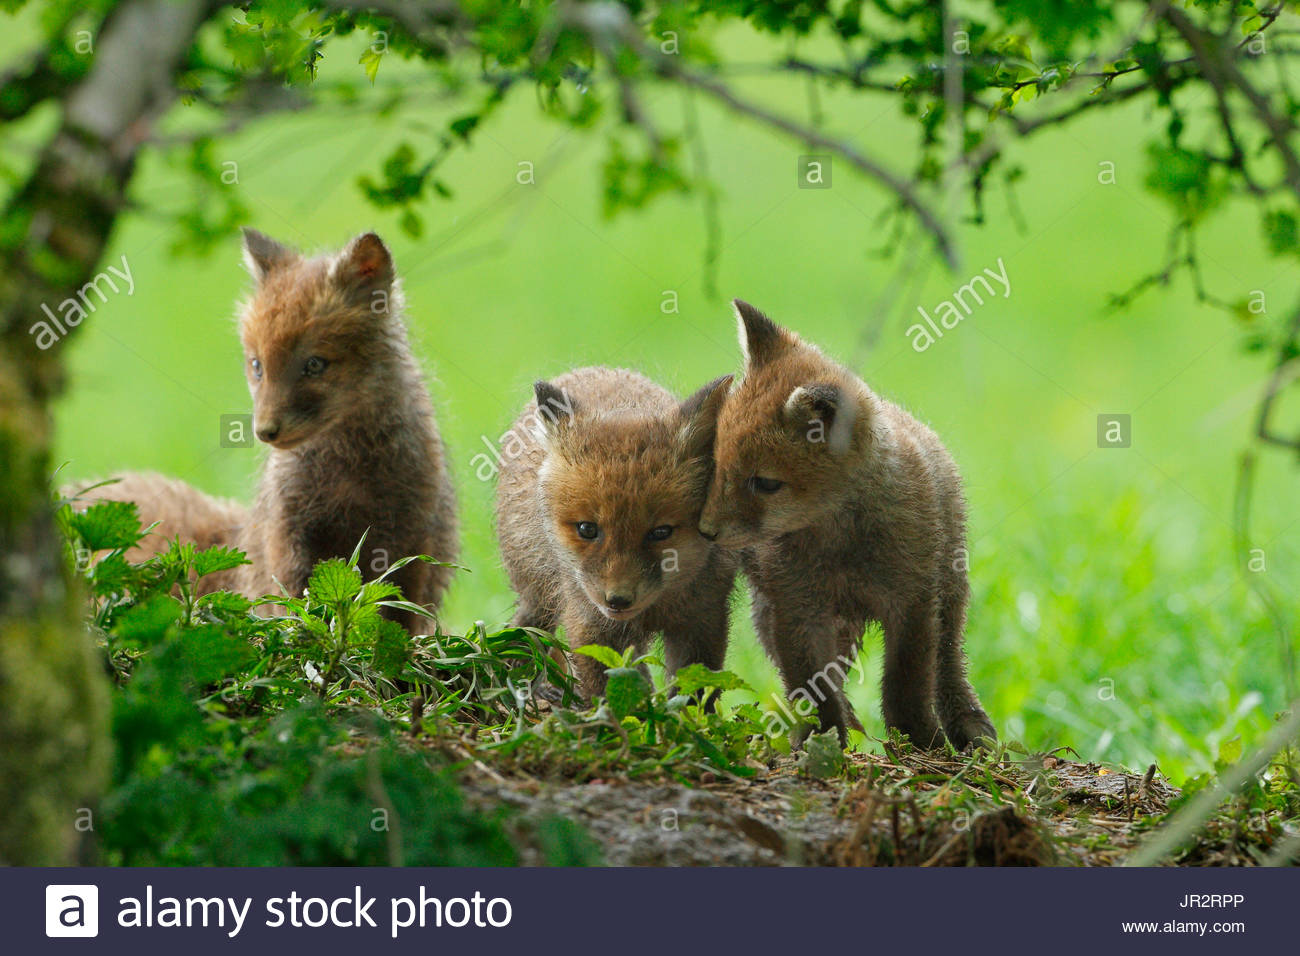 Red fox (Vulpes vulpes) young at the exit of the burrow in meadow under a hedge, Ardenne, Belgium - Stock Image